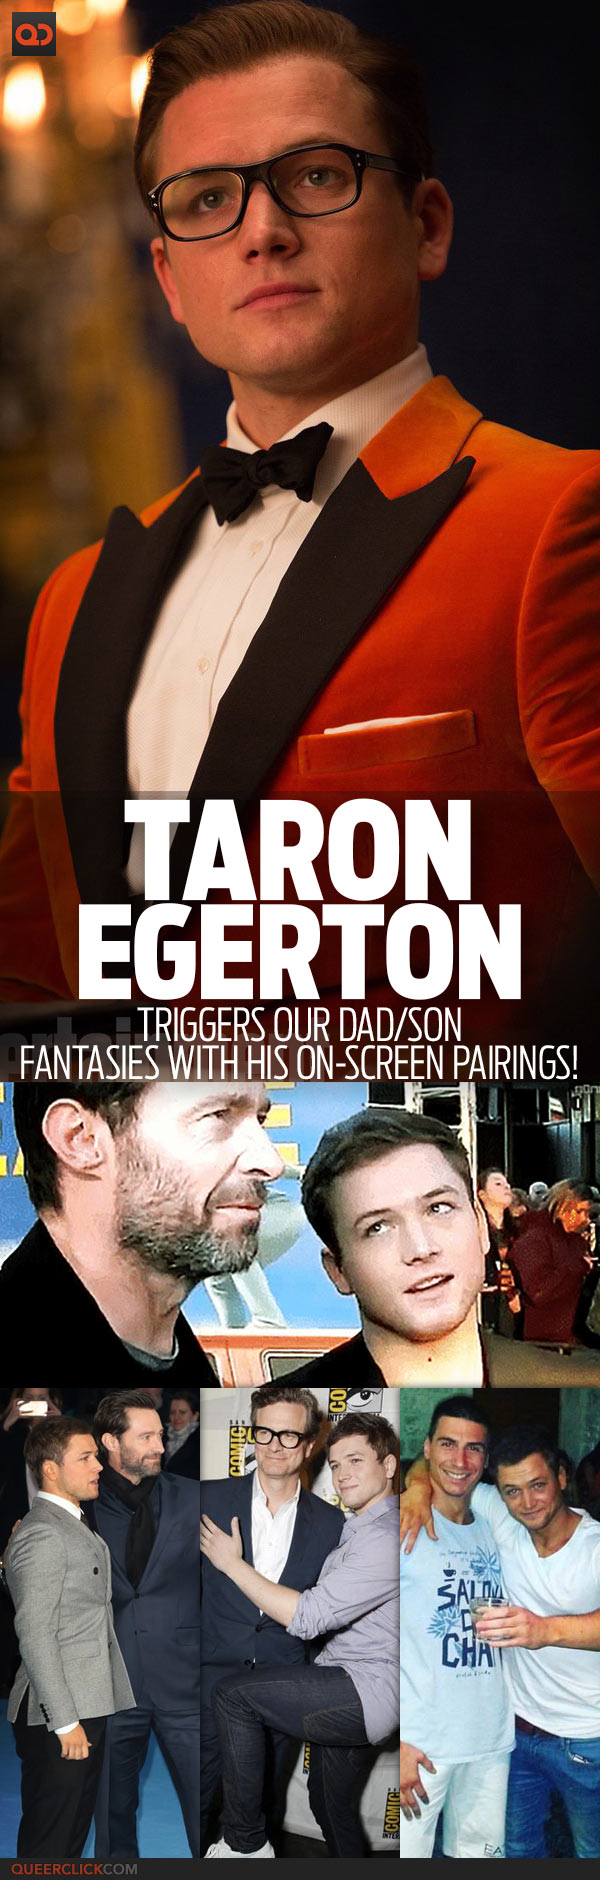 Taron Egerton Triggers Our Dad/Son Fantasies With His On-Screen Pairings!